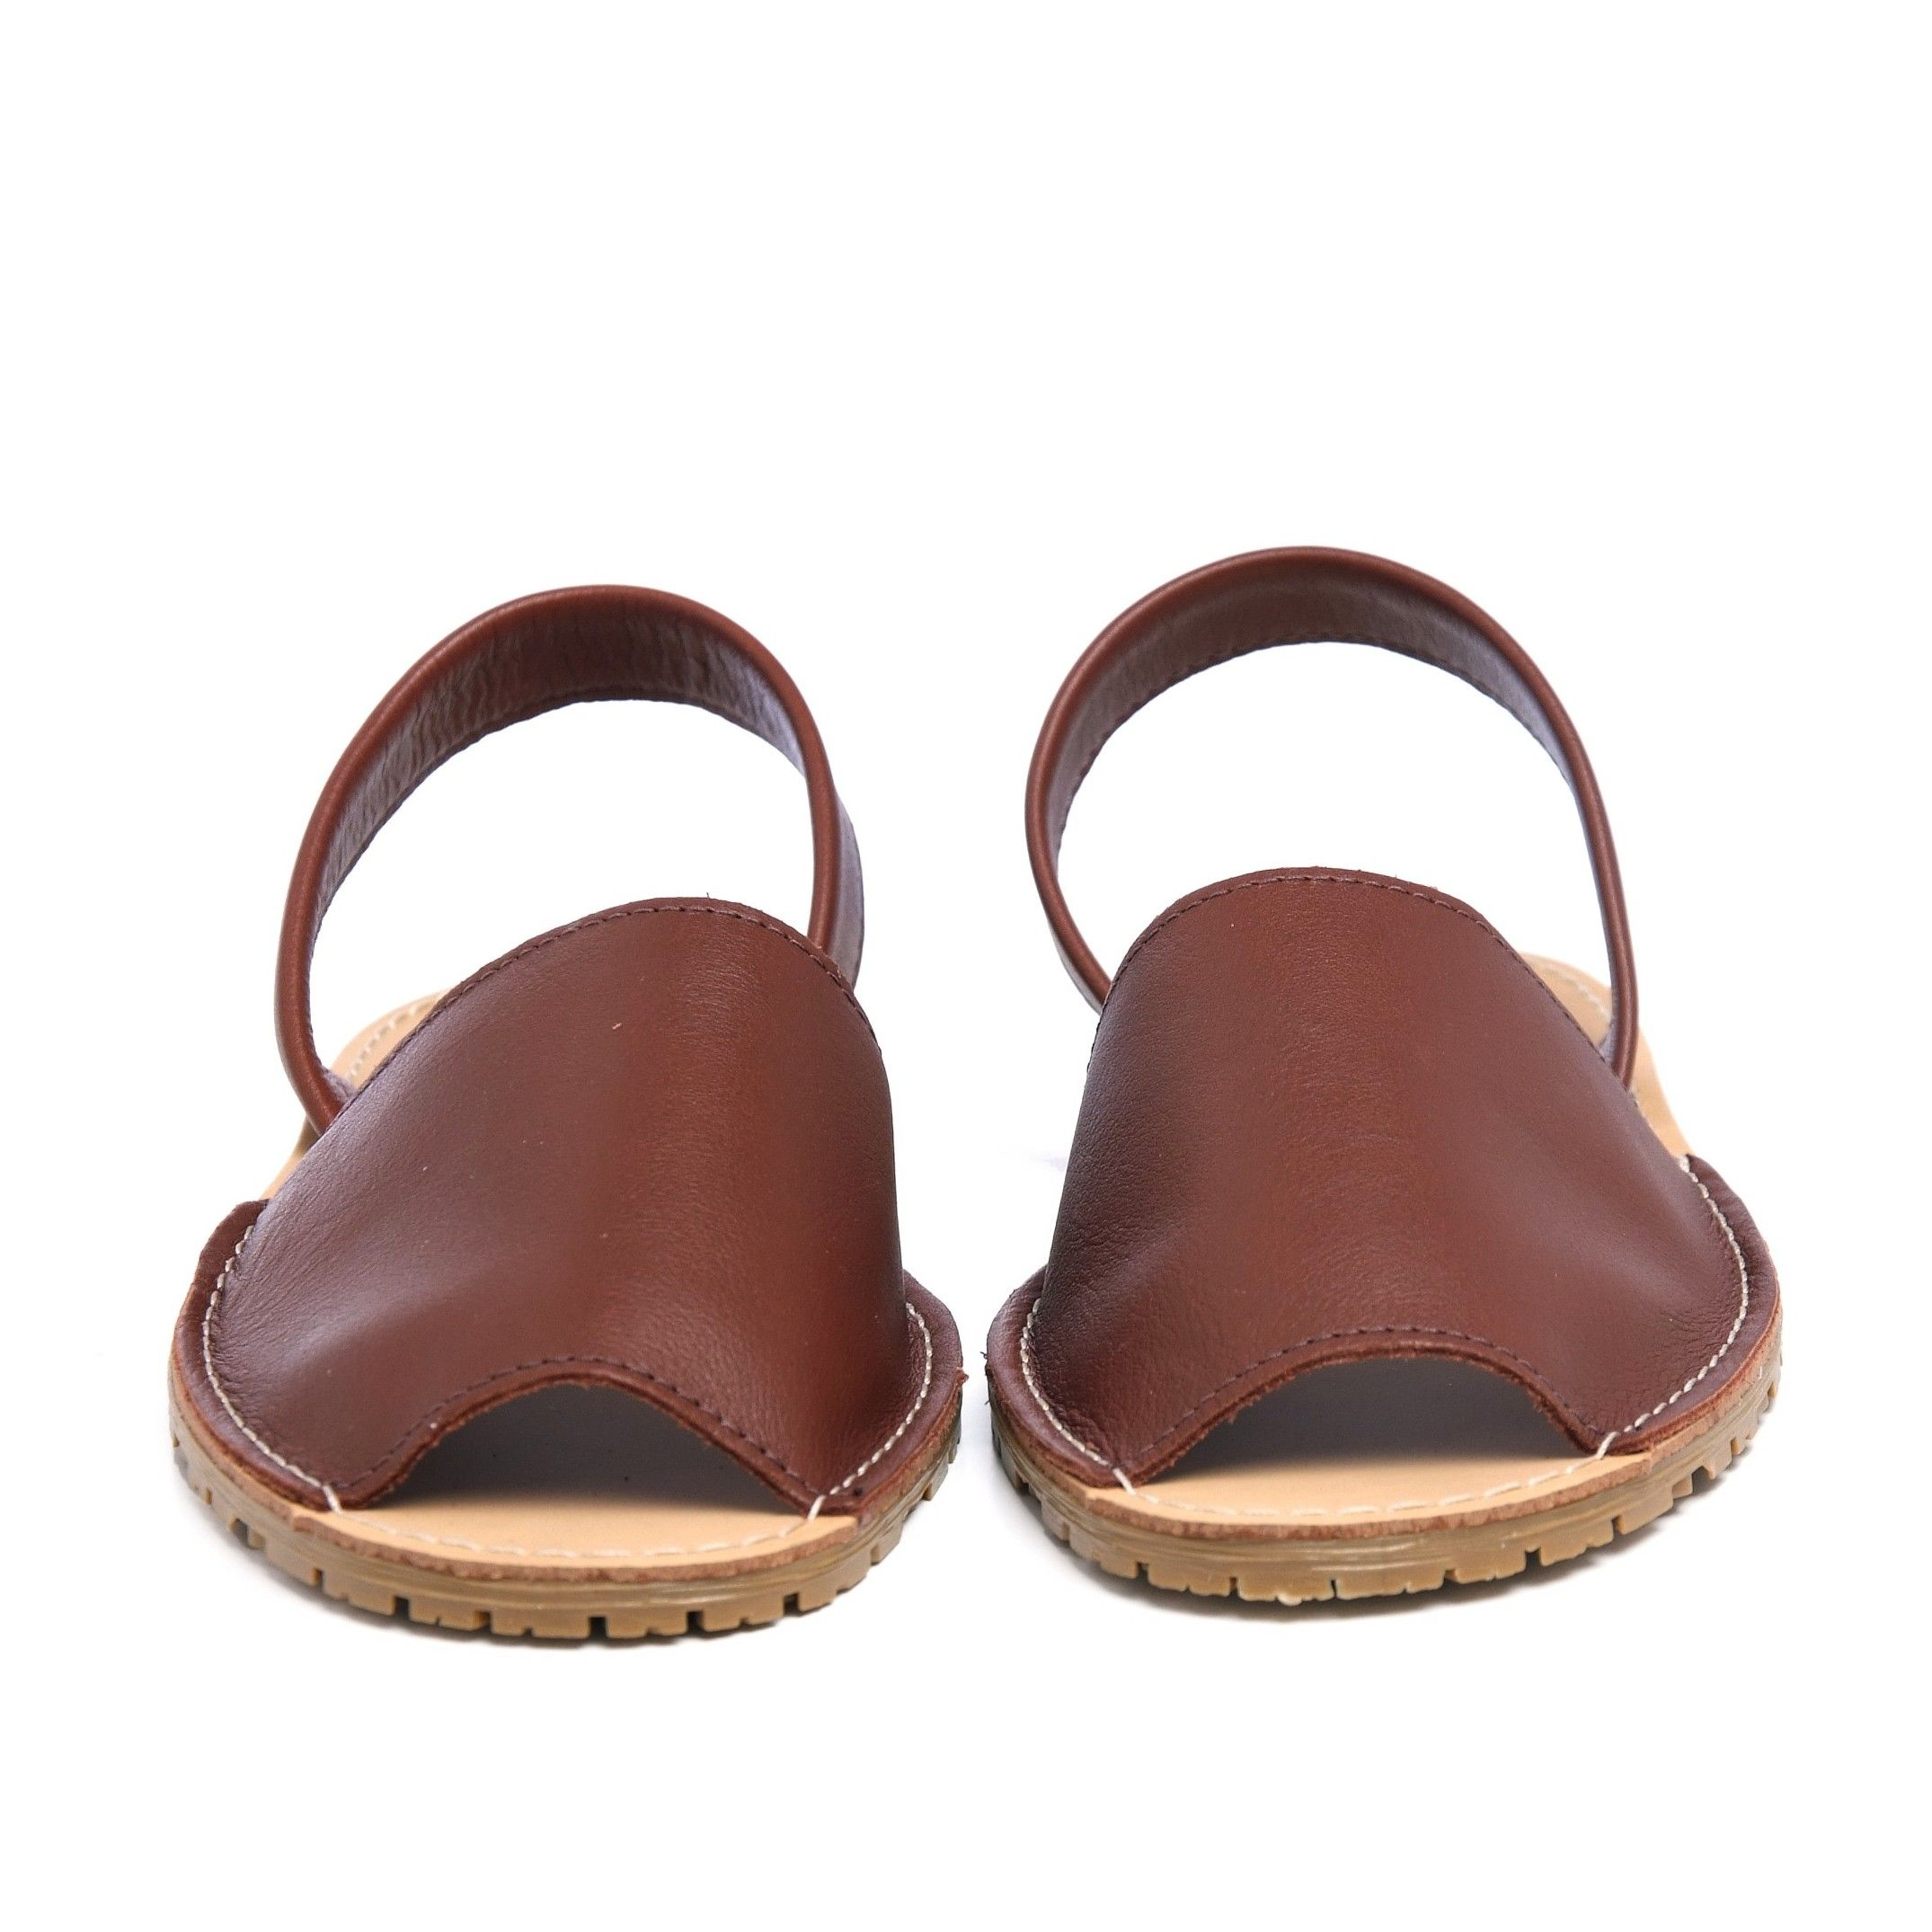 Classic leather sandal Menorquina for Women Leather Shoes Maria Barcelo